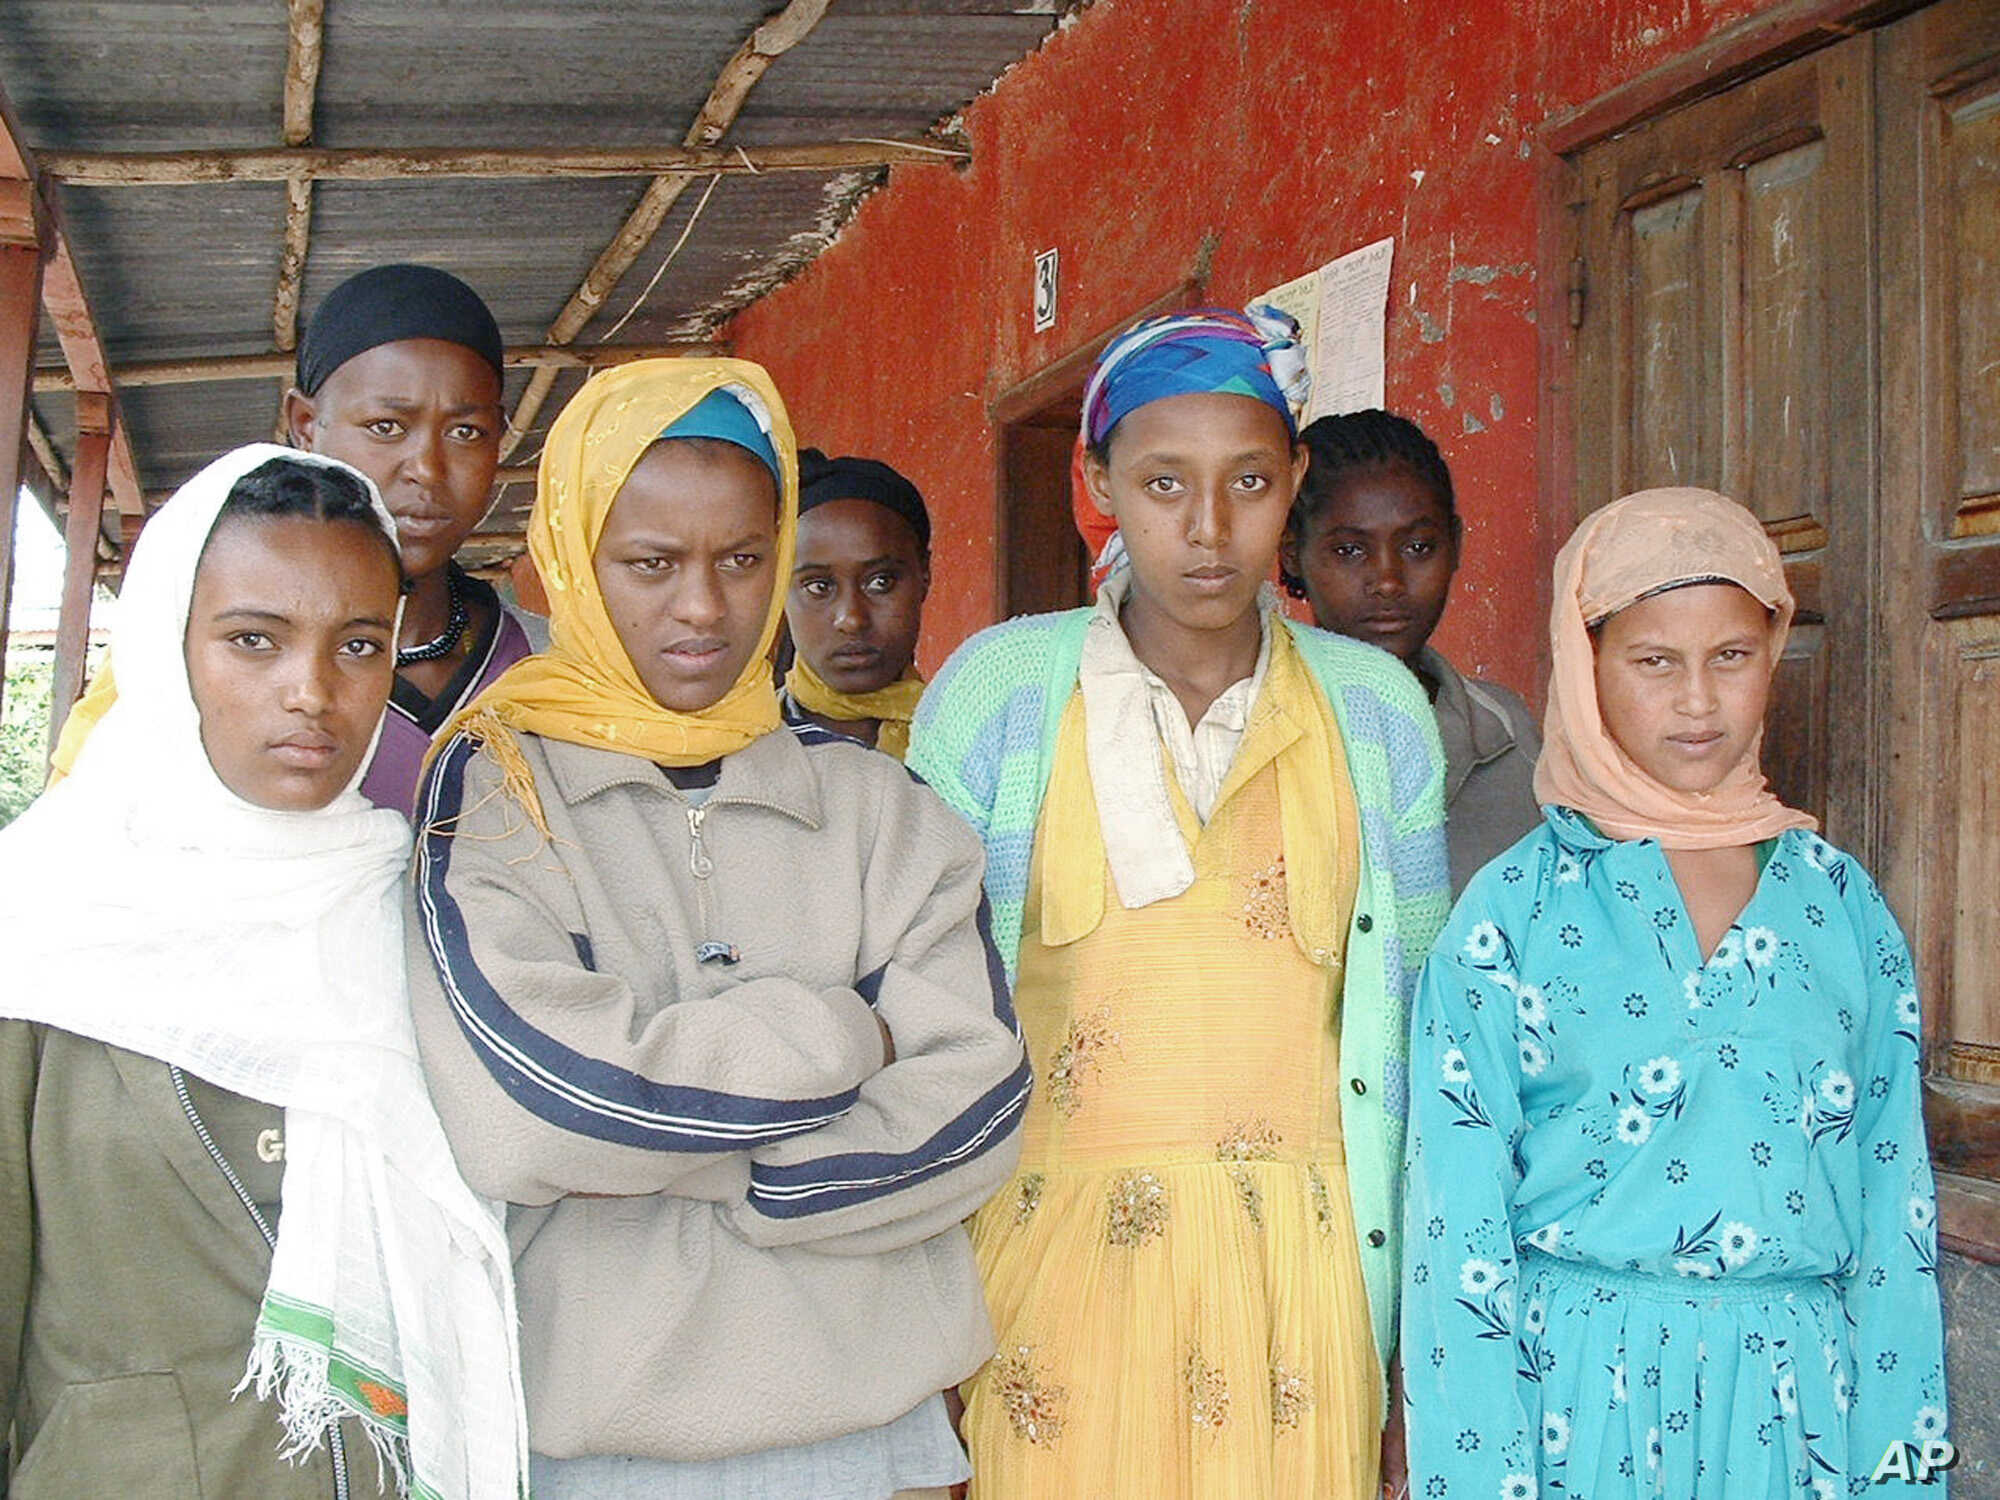 Ethiopian Film Portrays Girls' Abduction for Forced Marriage   Voice